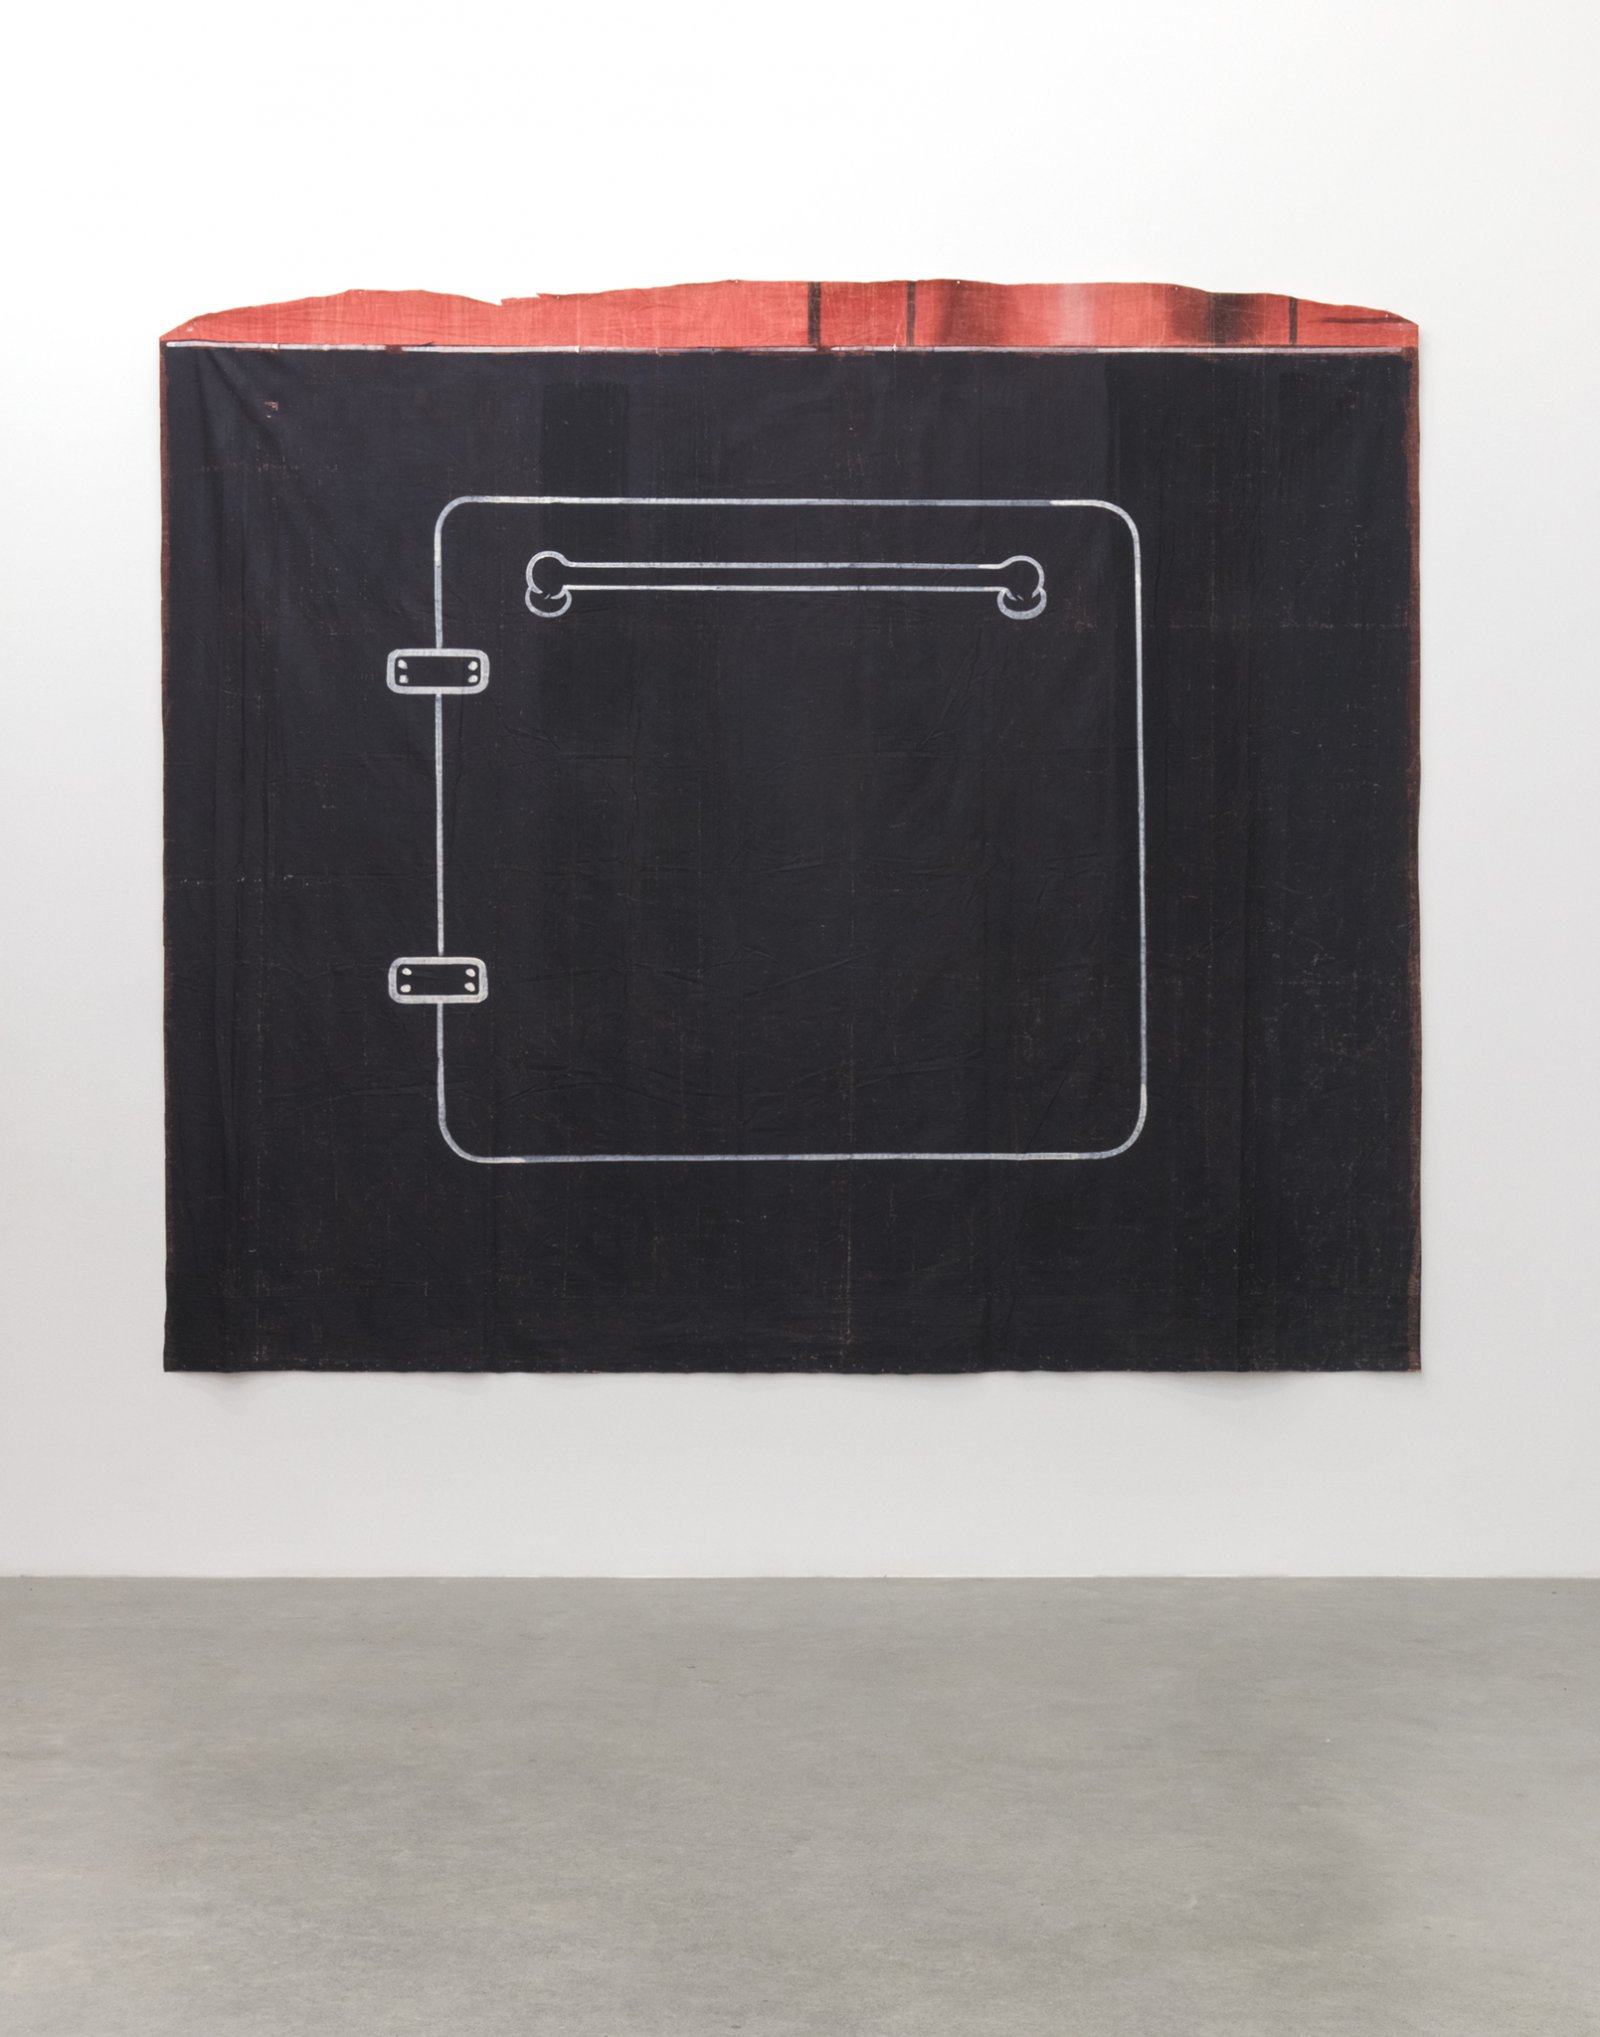 Geoffrey Farmer, COVEN SHOVEN OVEN FOR THE BADLY BEHAVED, 2017, theatre backdrop (1939), 103 x 117 in (261 x 297 cm)